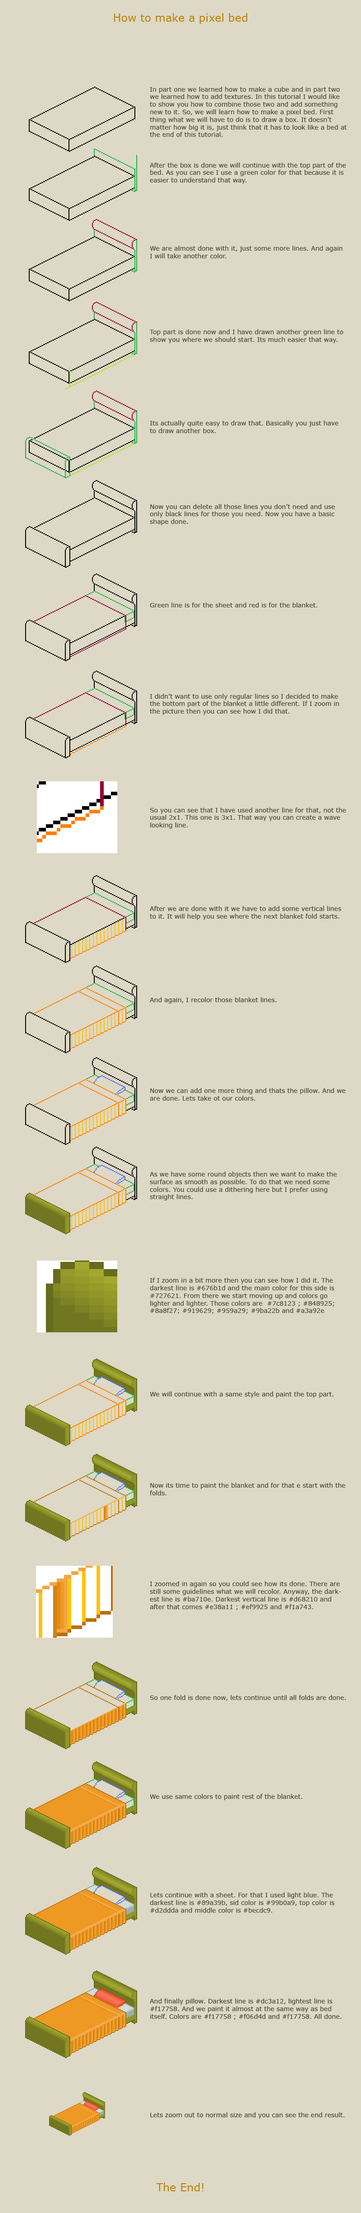 How to make a pixel bed by vanmall